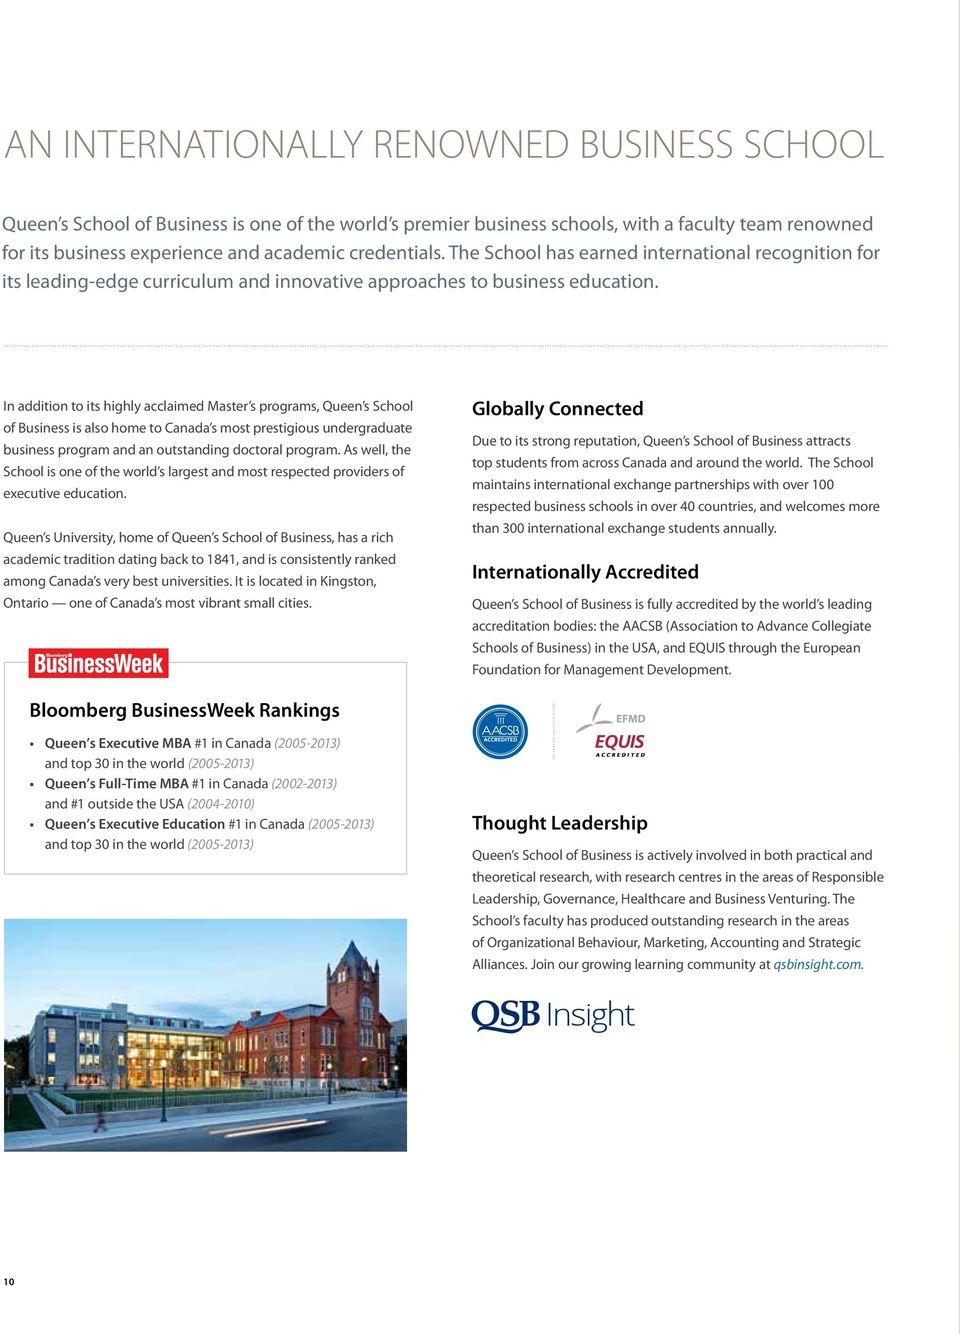 In addition to its highly acclaimed Master s programs, Queen s School of Business is also home to Canada s most prestigious undergraduate business program and an outstanding doctoral program.